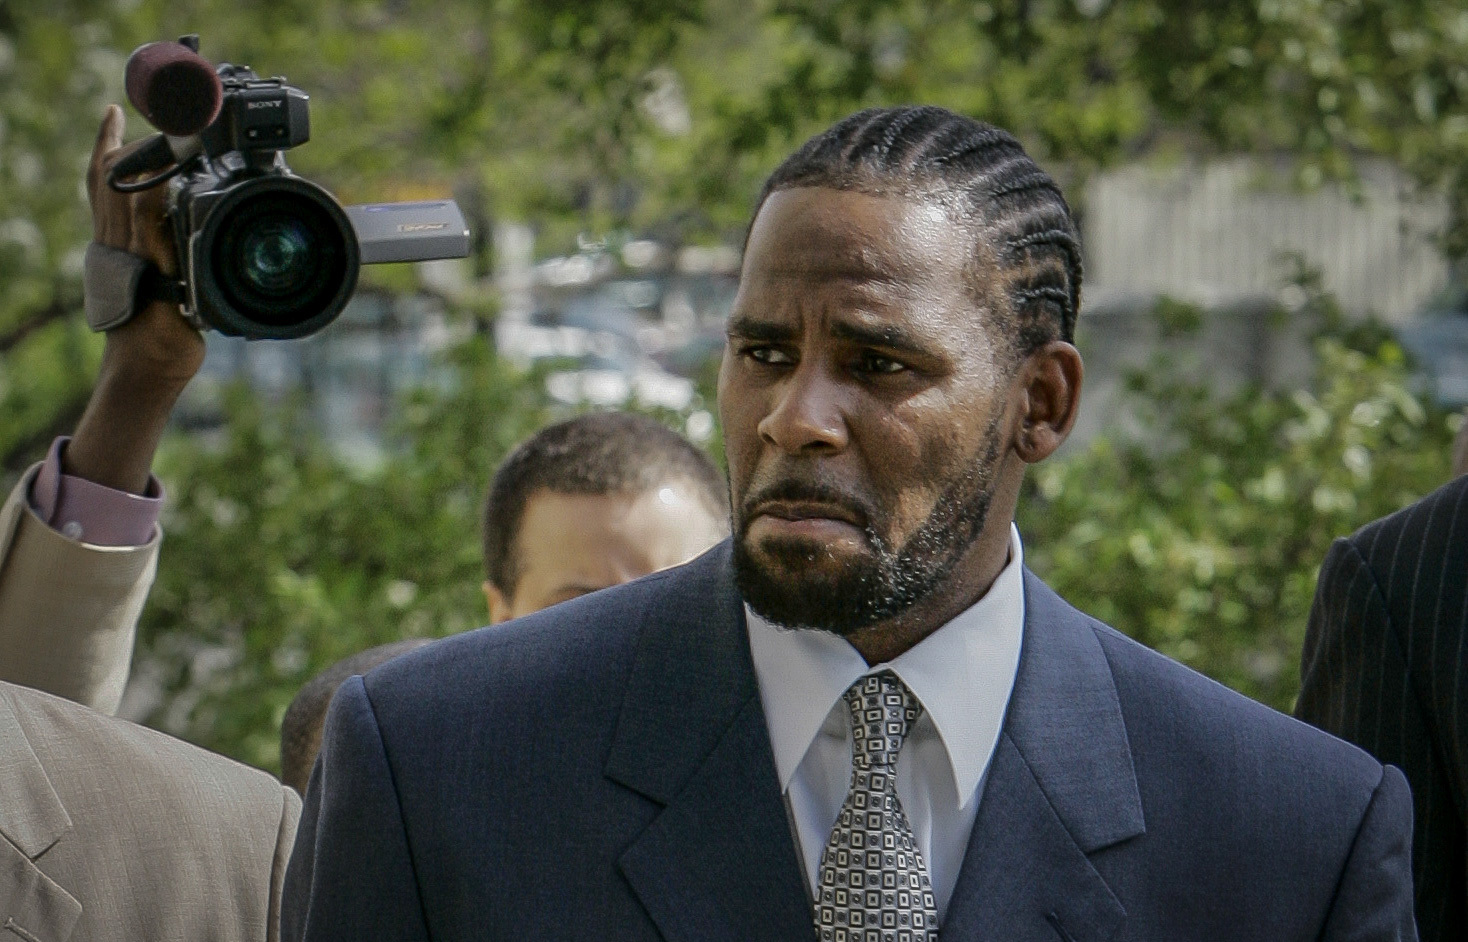 R. Kelly arriving for the first day of jury selection in his child pornography trial at the Cook County Criminal Courthouse in Chicago in May 2008.